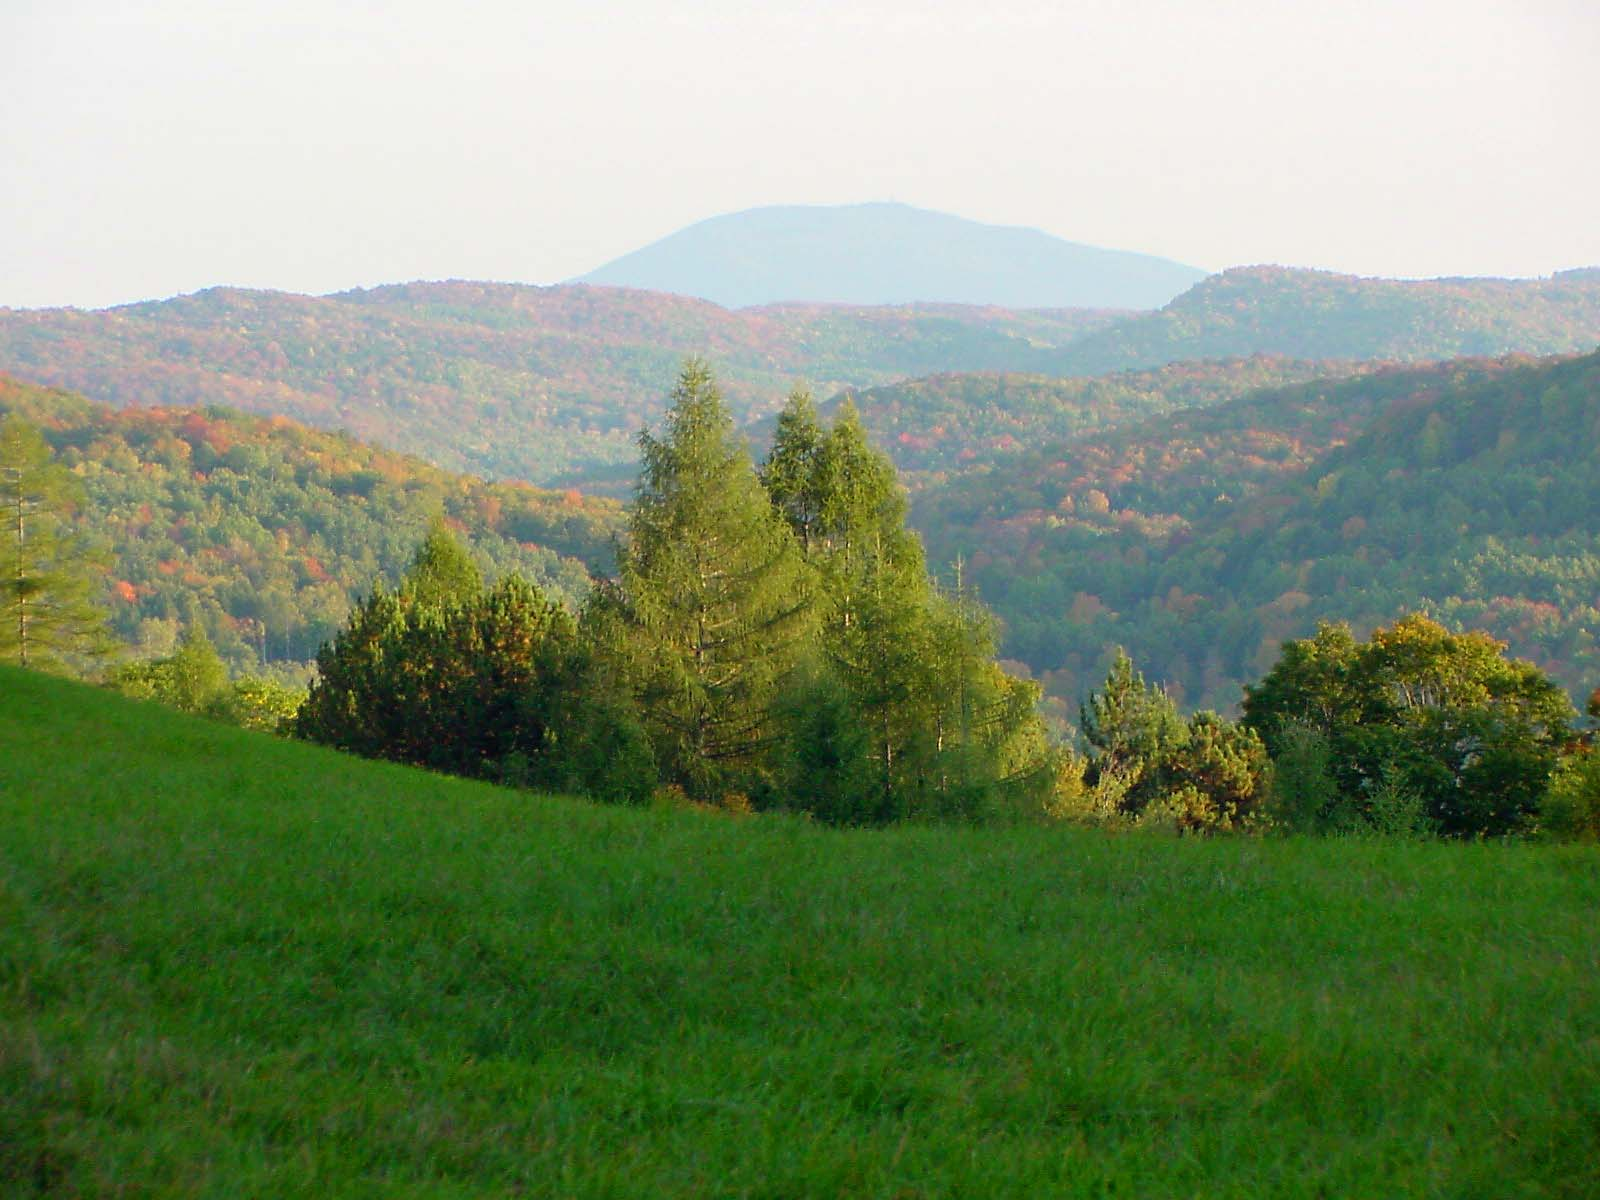 View of Mount Ascutney from the French Lot